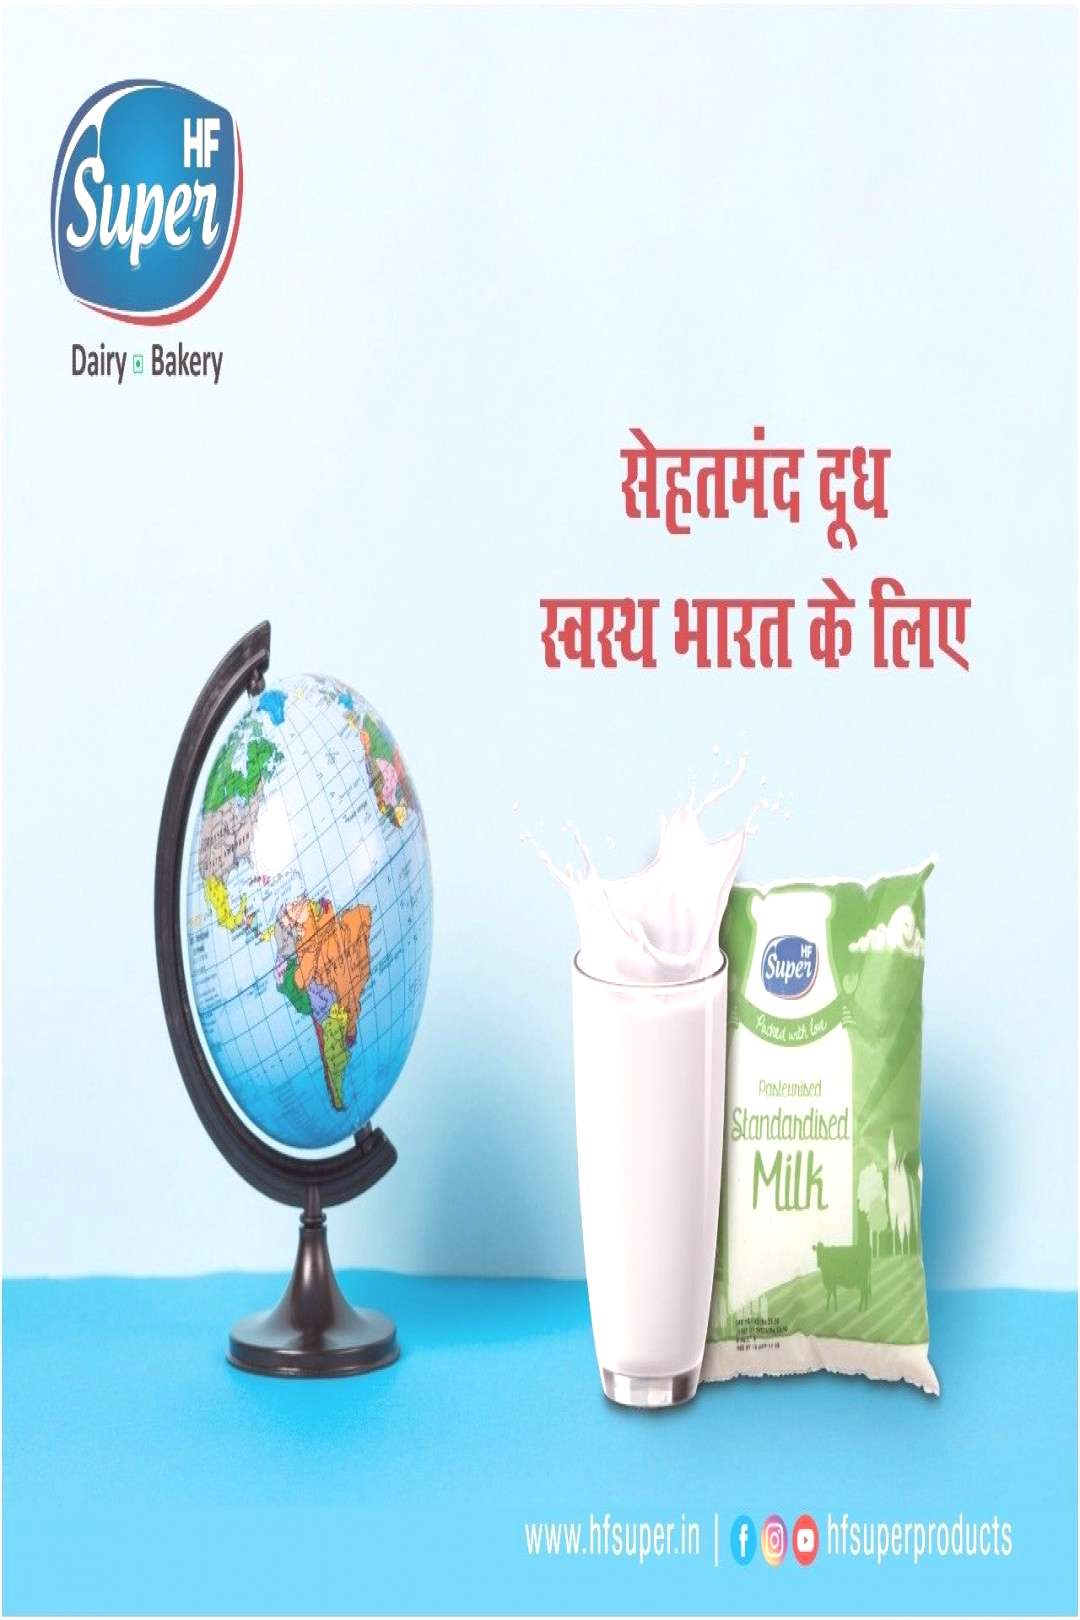 World Health Day This World Health Day, let's commit for a healthy lifestyle. Also, don't forget to